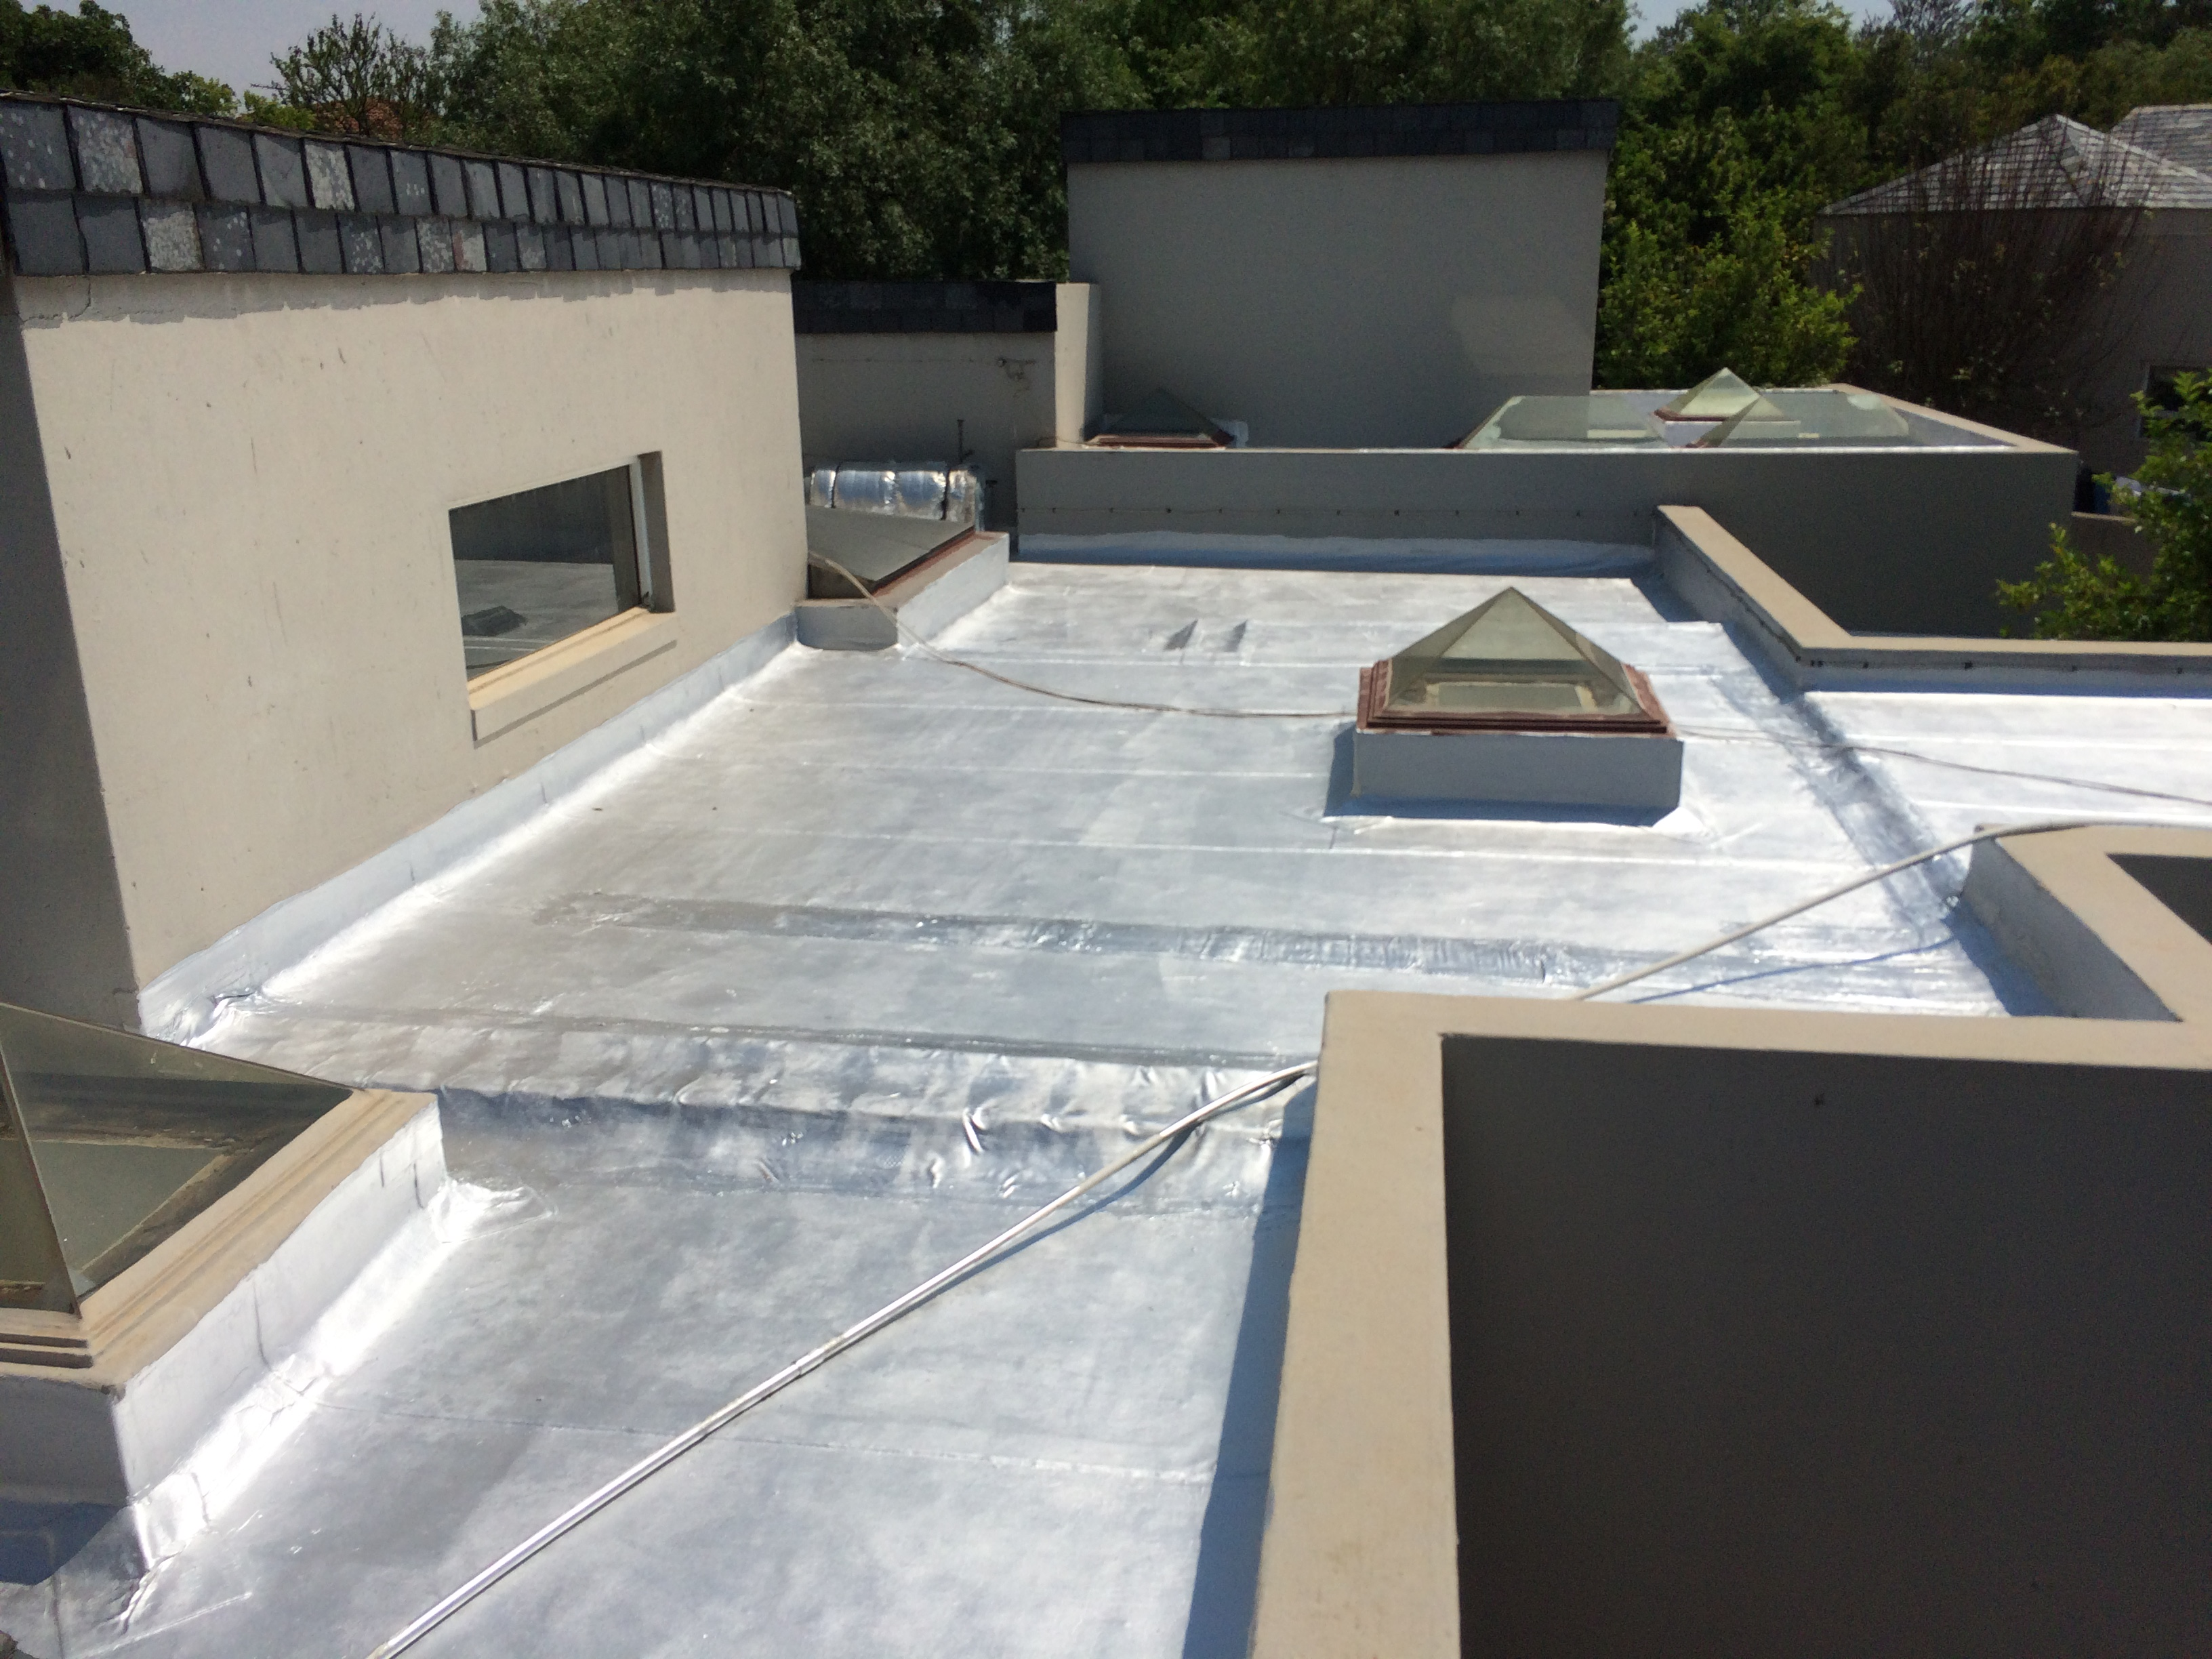 Completed torch on and skylight waterpro